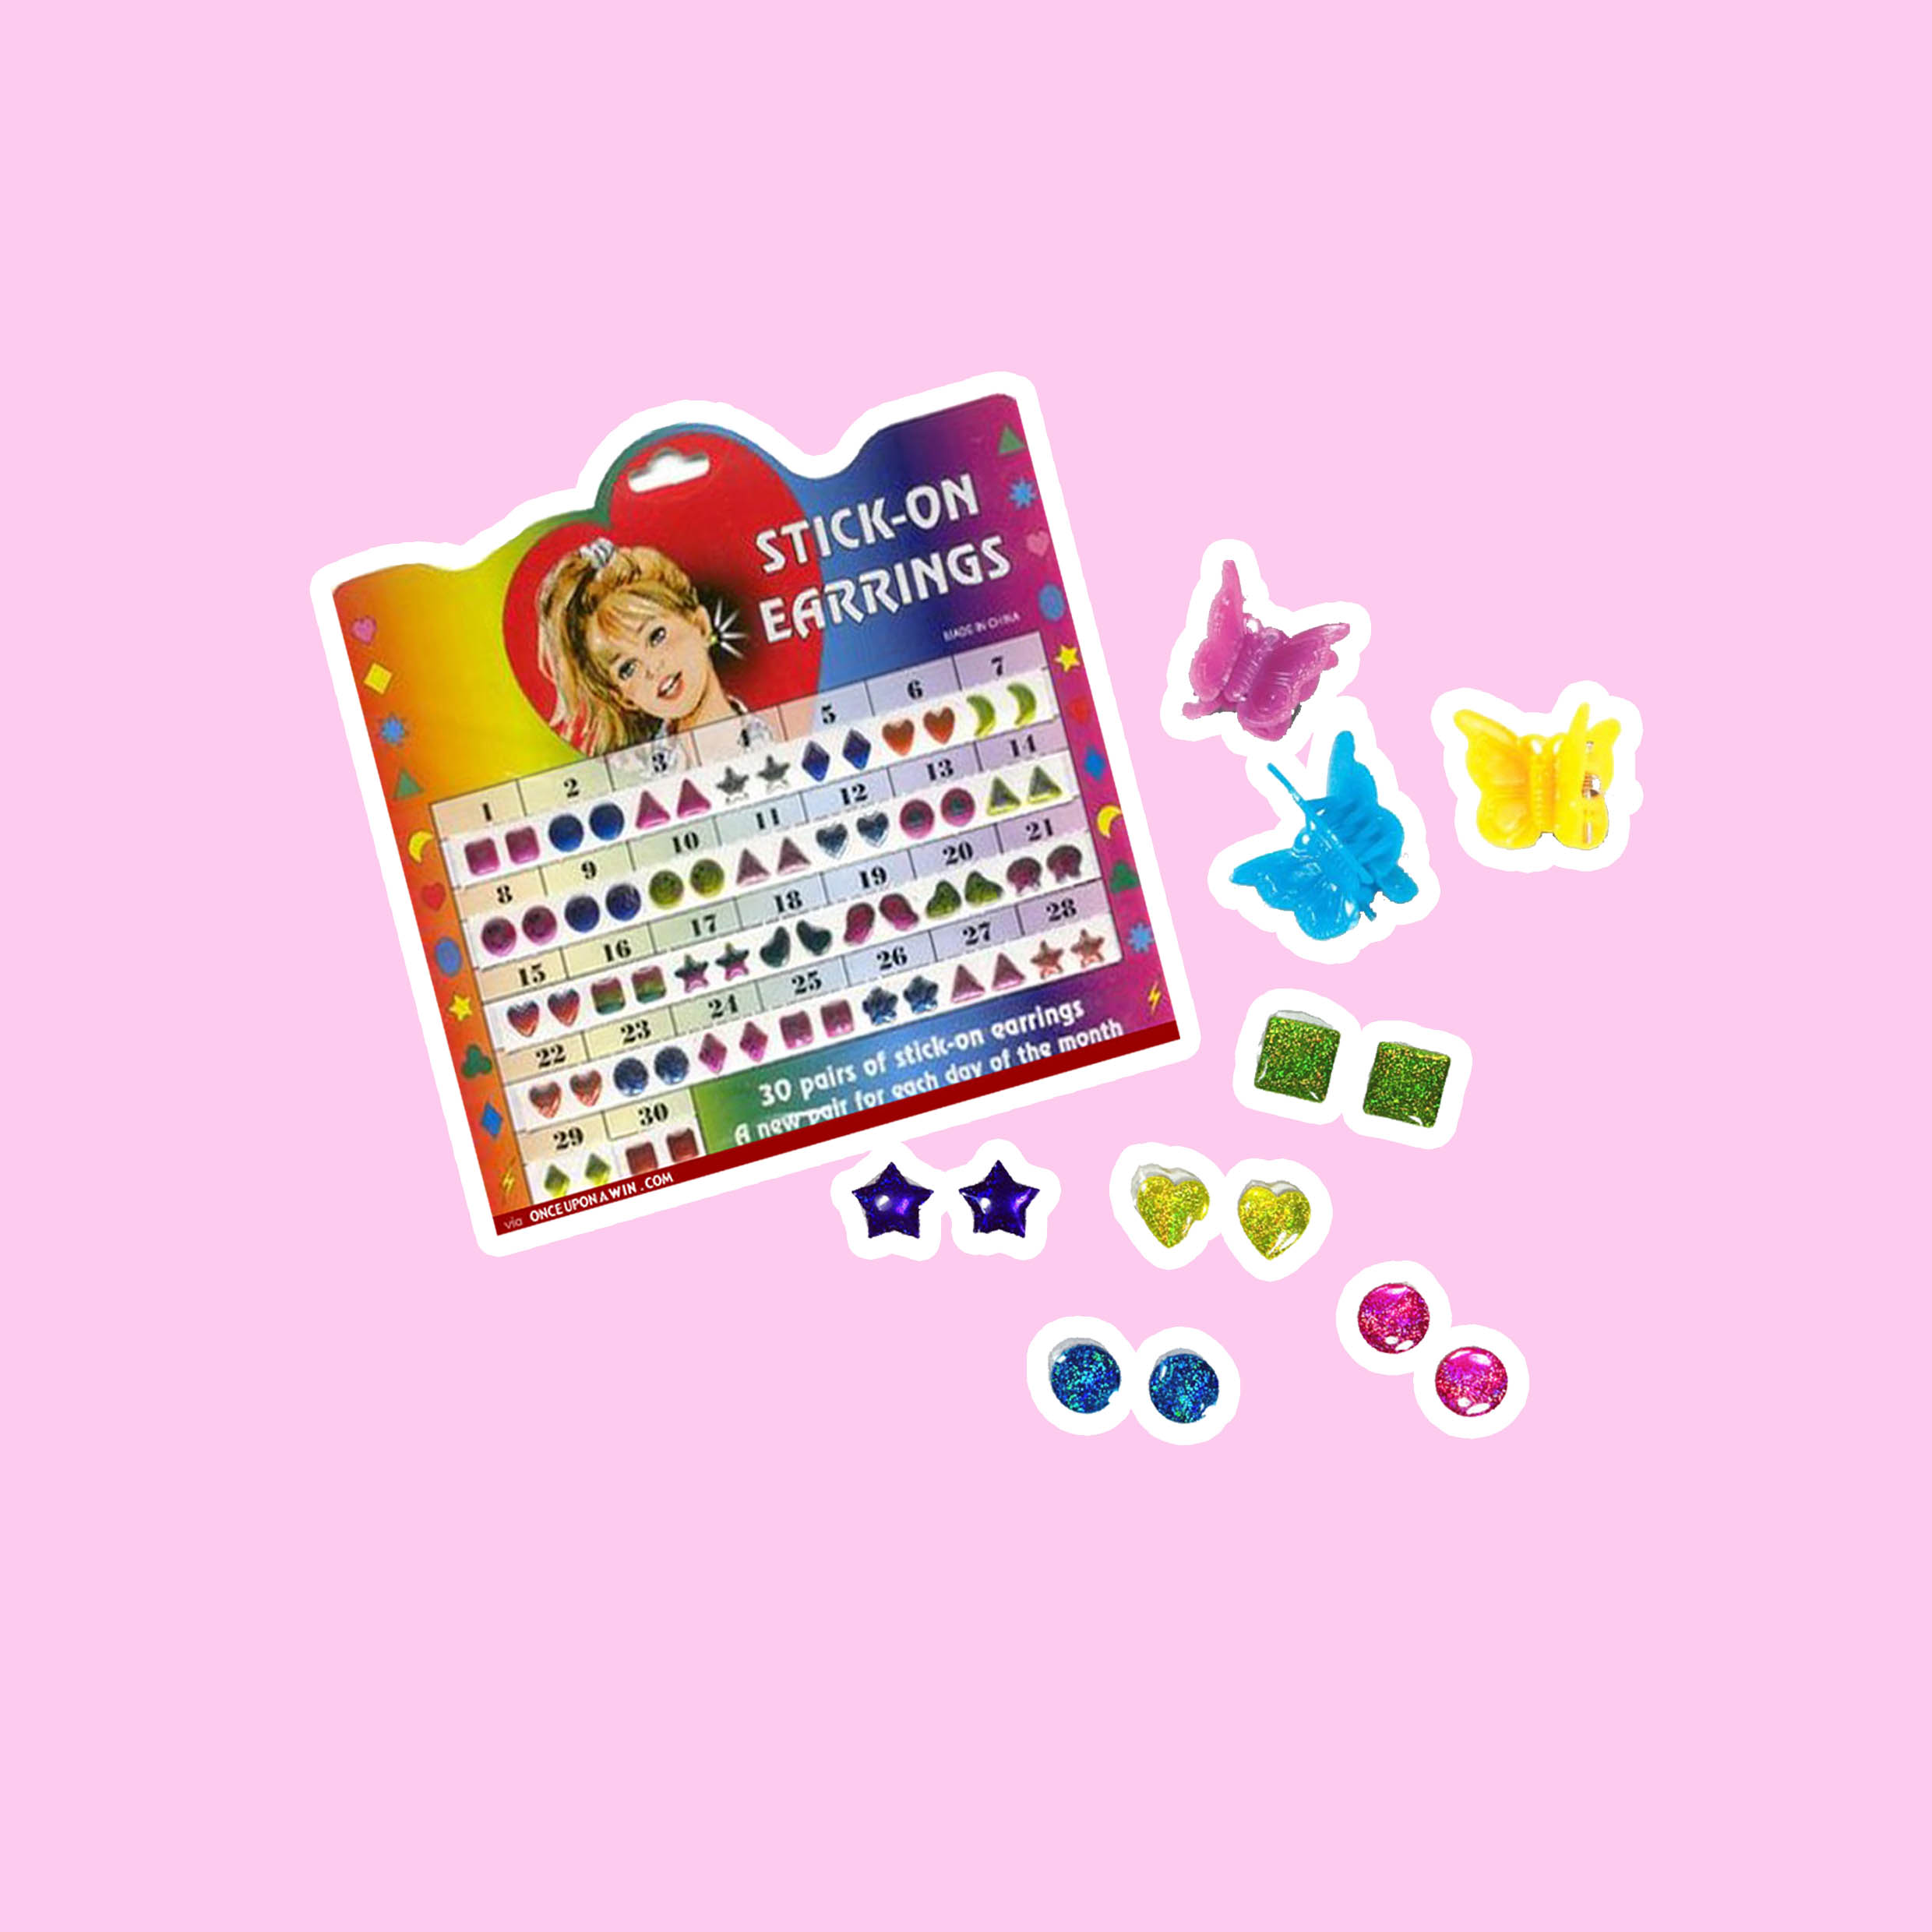 STICK - Nothing beats some playground glam until you lose an earring. Your local $2 value store had us all covered, from moons and stars to dolphins - maybe if you were a dare devil you'd even mix and match!